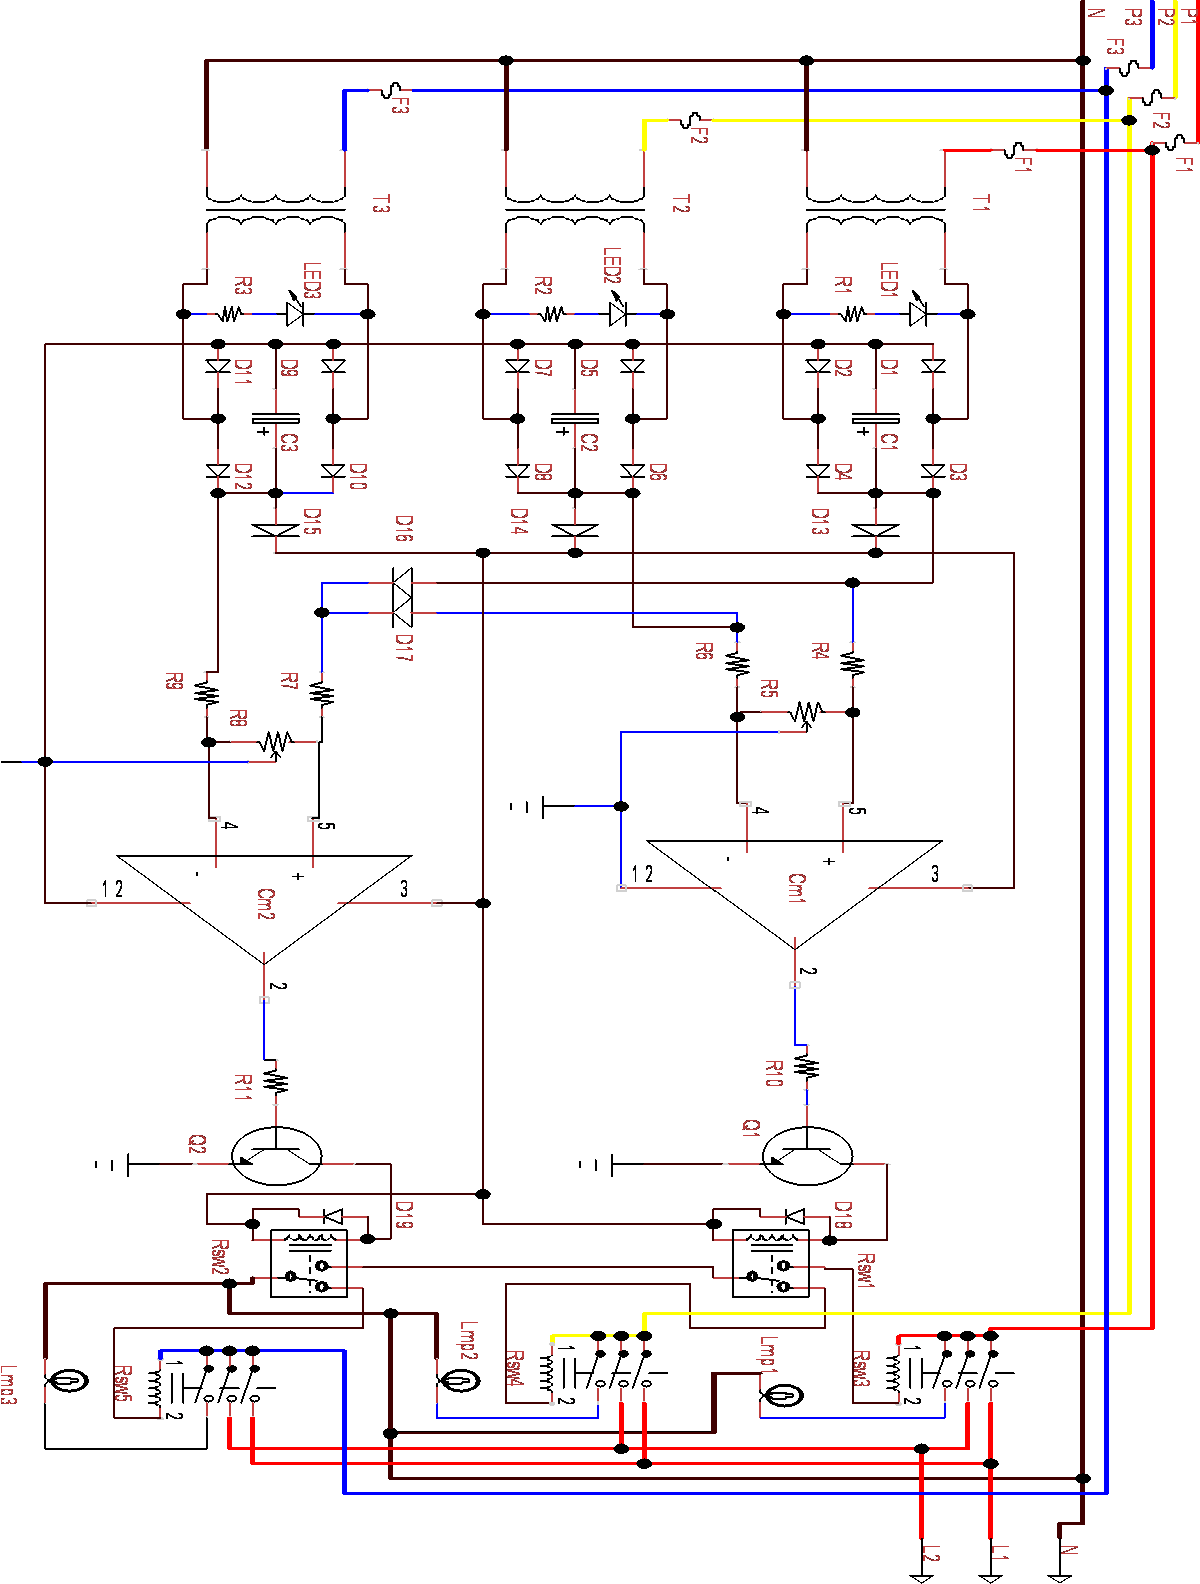 Design And Implementation Of Automatic Three Phase Changer Using Lm The Lm324 Quad Comparator Circuit 324 Integrated Semantic Scholar